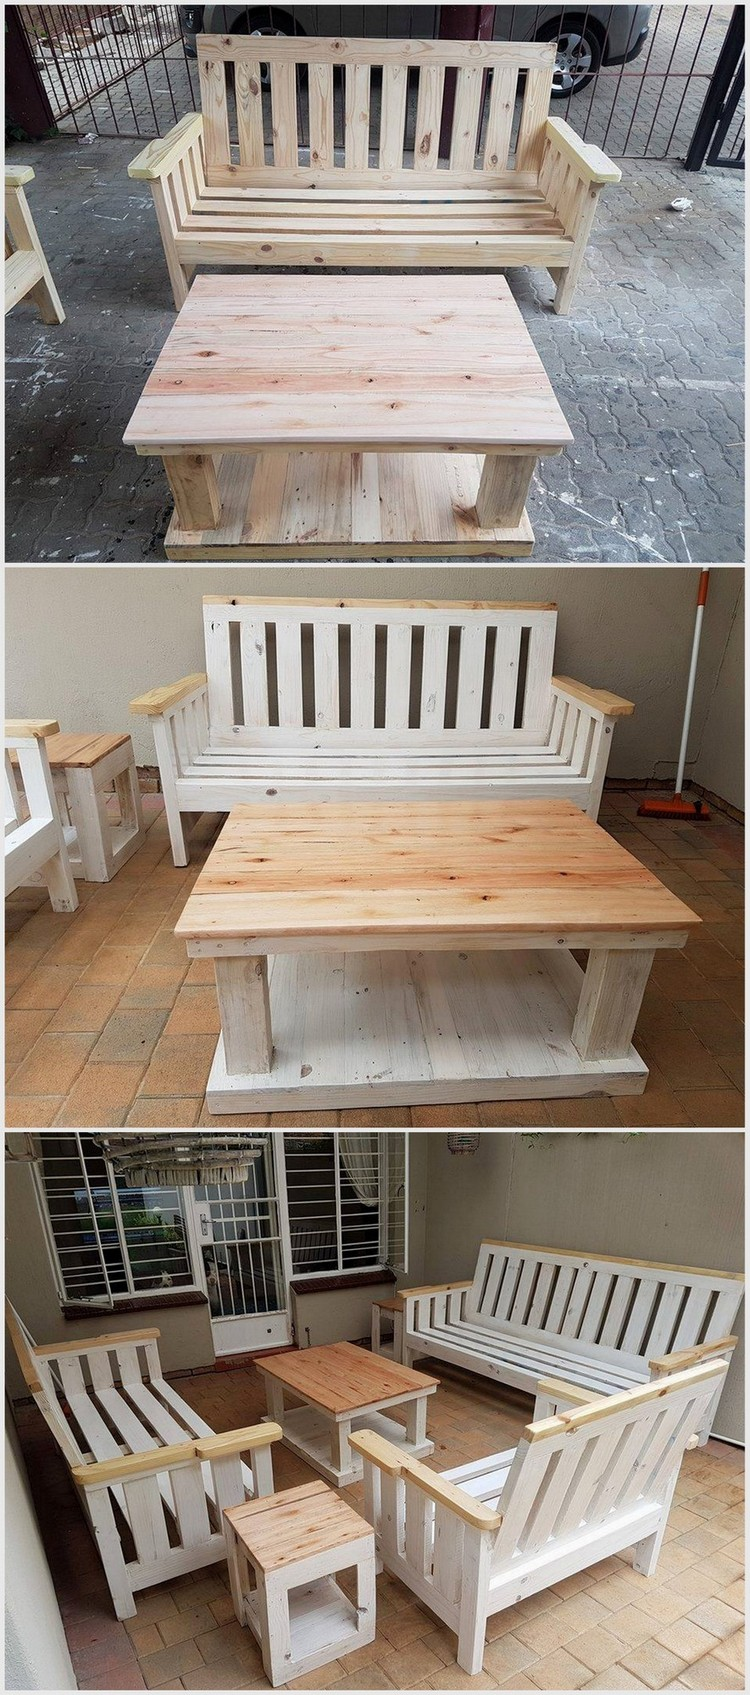 Excellent ideas with used wood pallets pallet wood projects for Pallet ideas